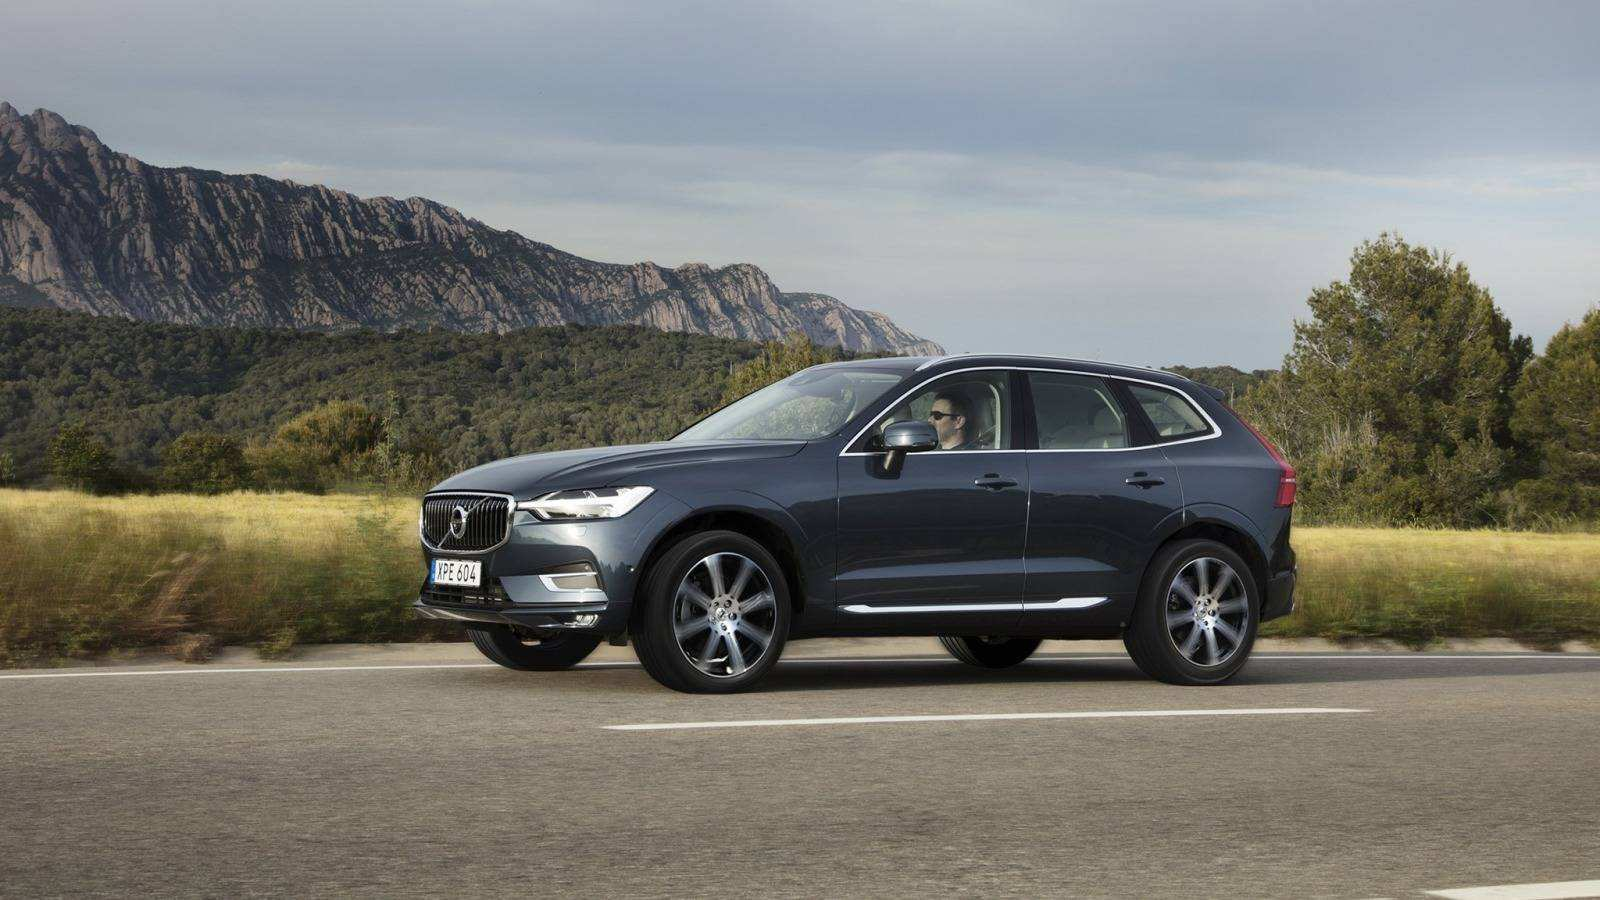 73 All New New Volvo Xc60 2019 Manual Specs New Concept with New Volvo Xc60 2019 Manual Specs